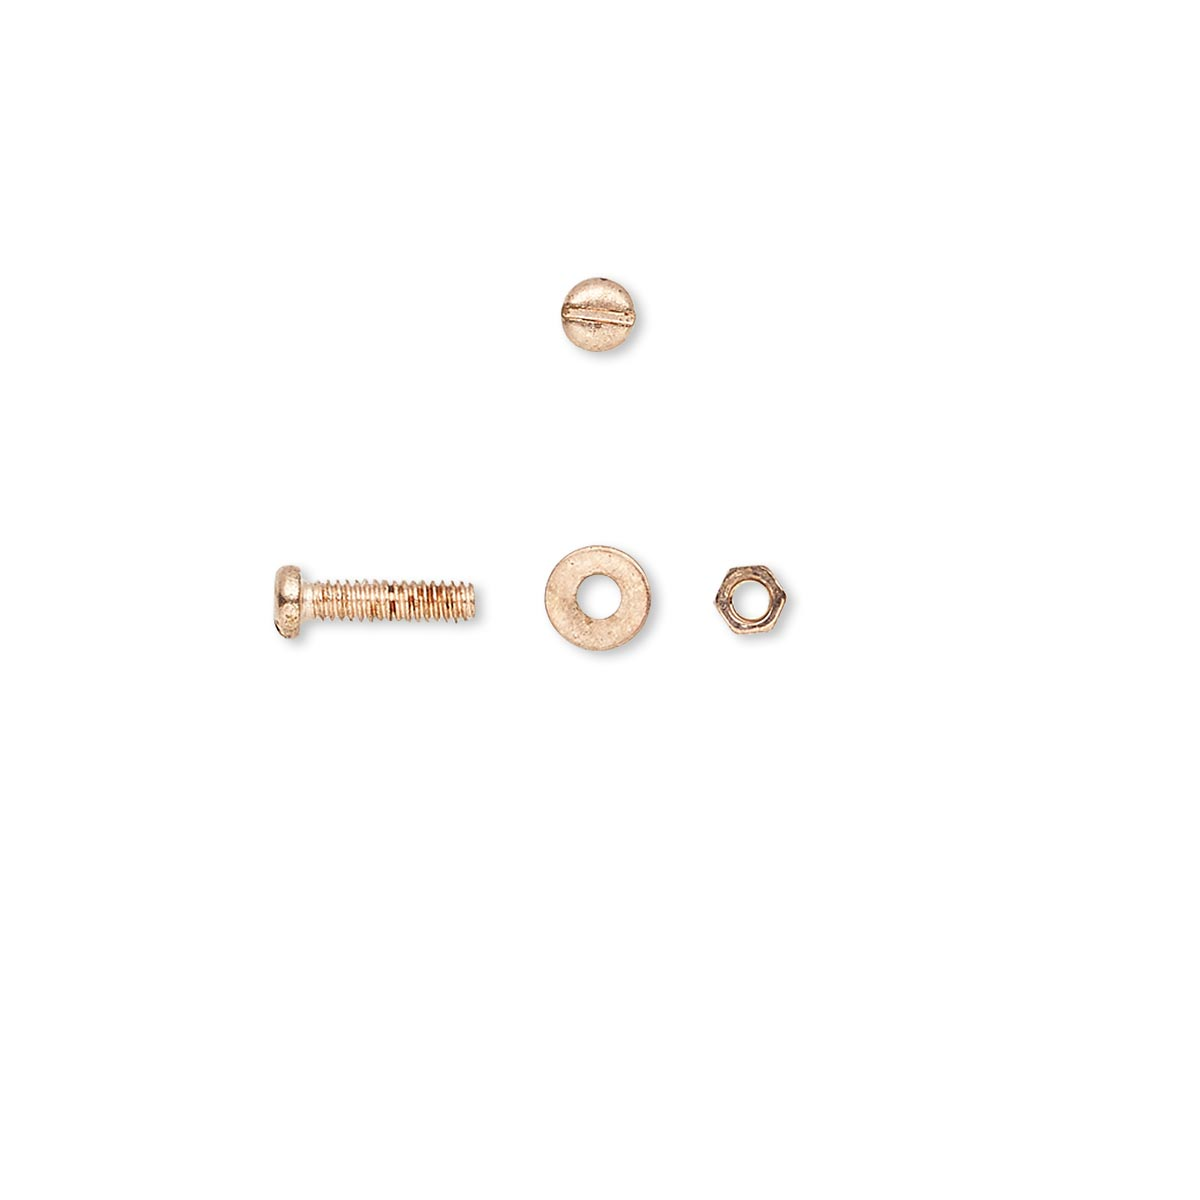 Micro hardware, copper-plated brass, 2 5x1 5mm nut / 4x0 5mm washer